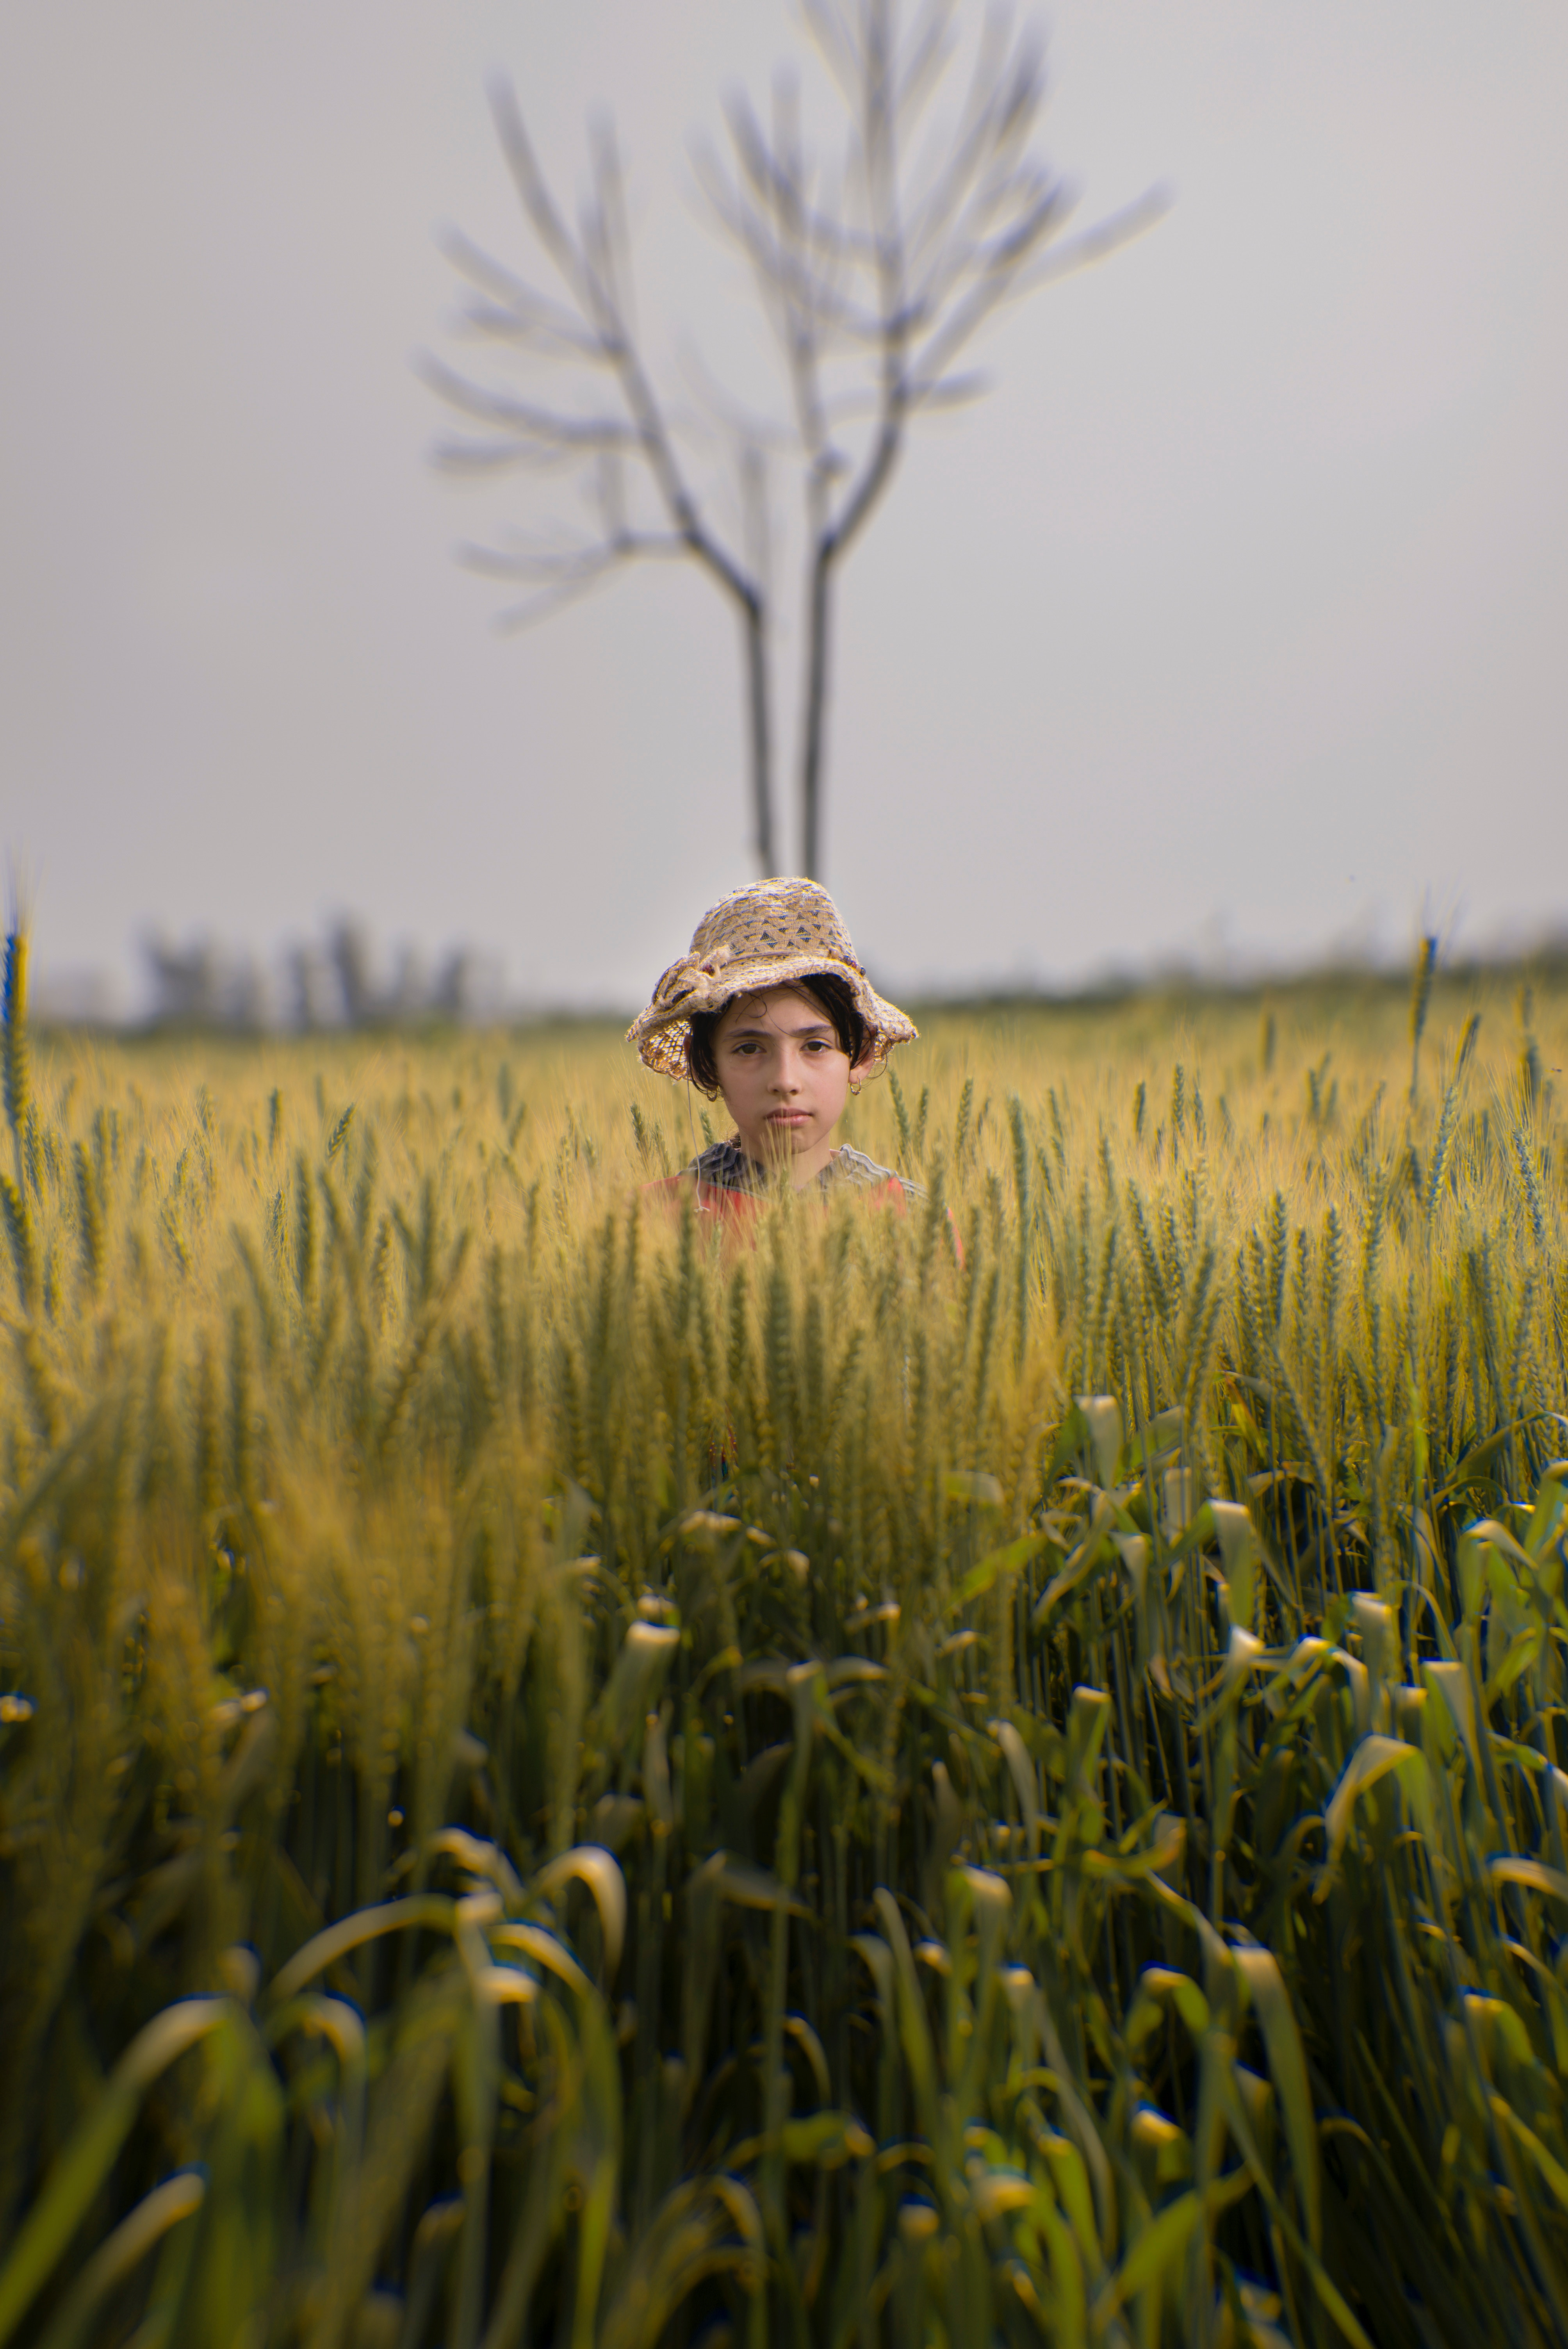 Toddler Wearing Brown Hat in the Middle of Green Field, Agriculture, Growth, Tree, Straw, HQ Photo